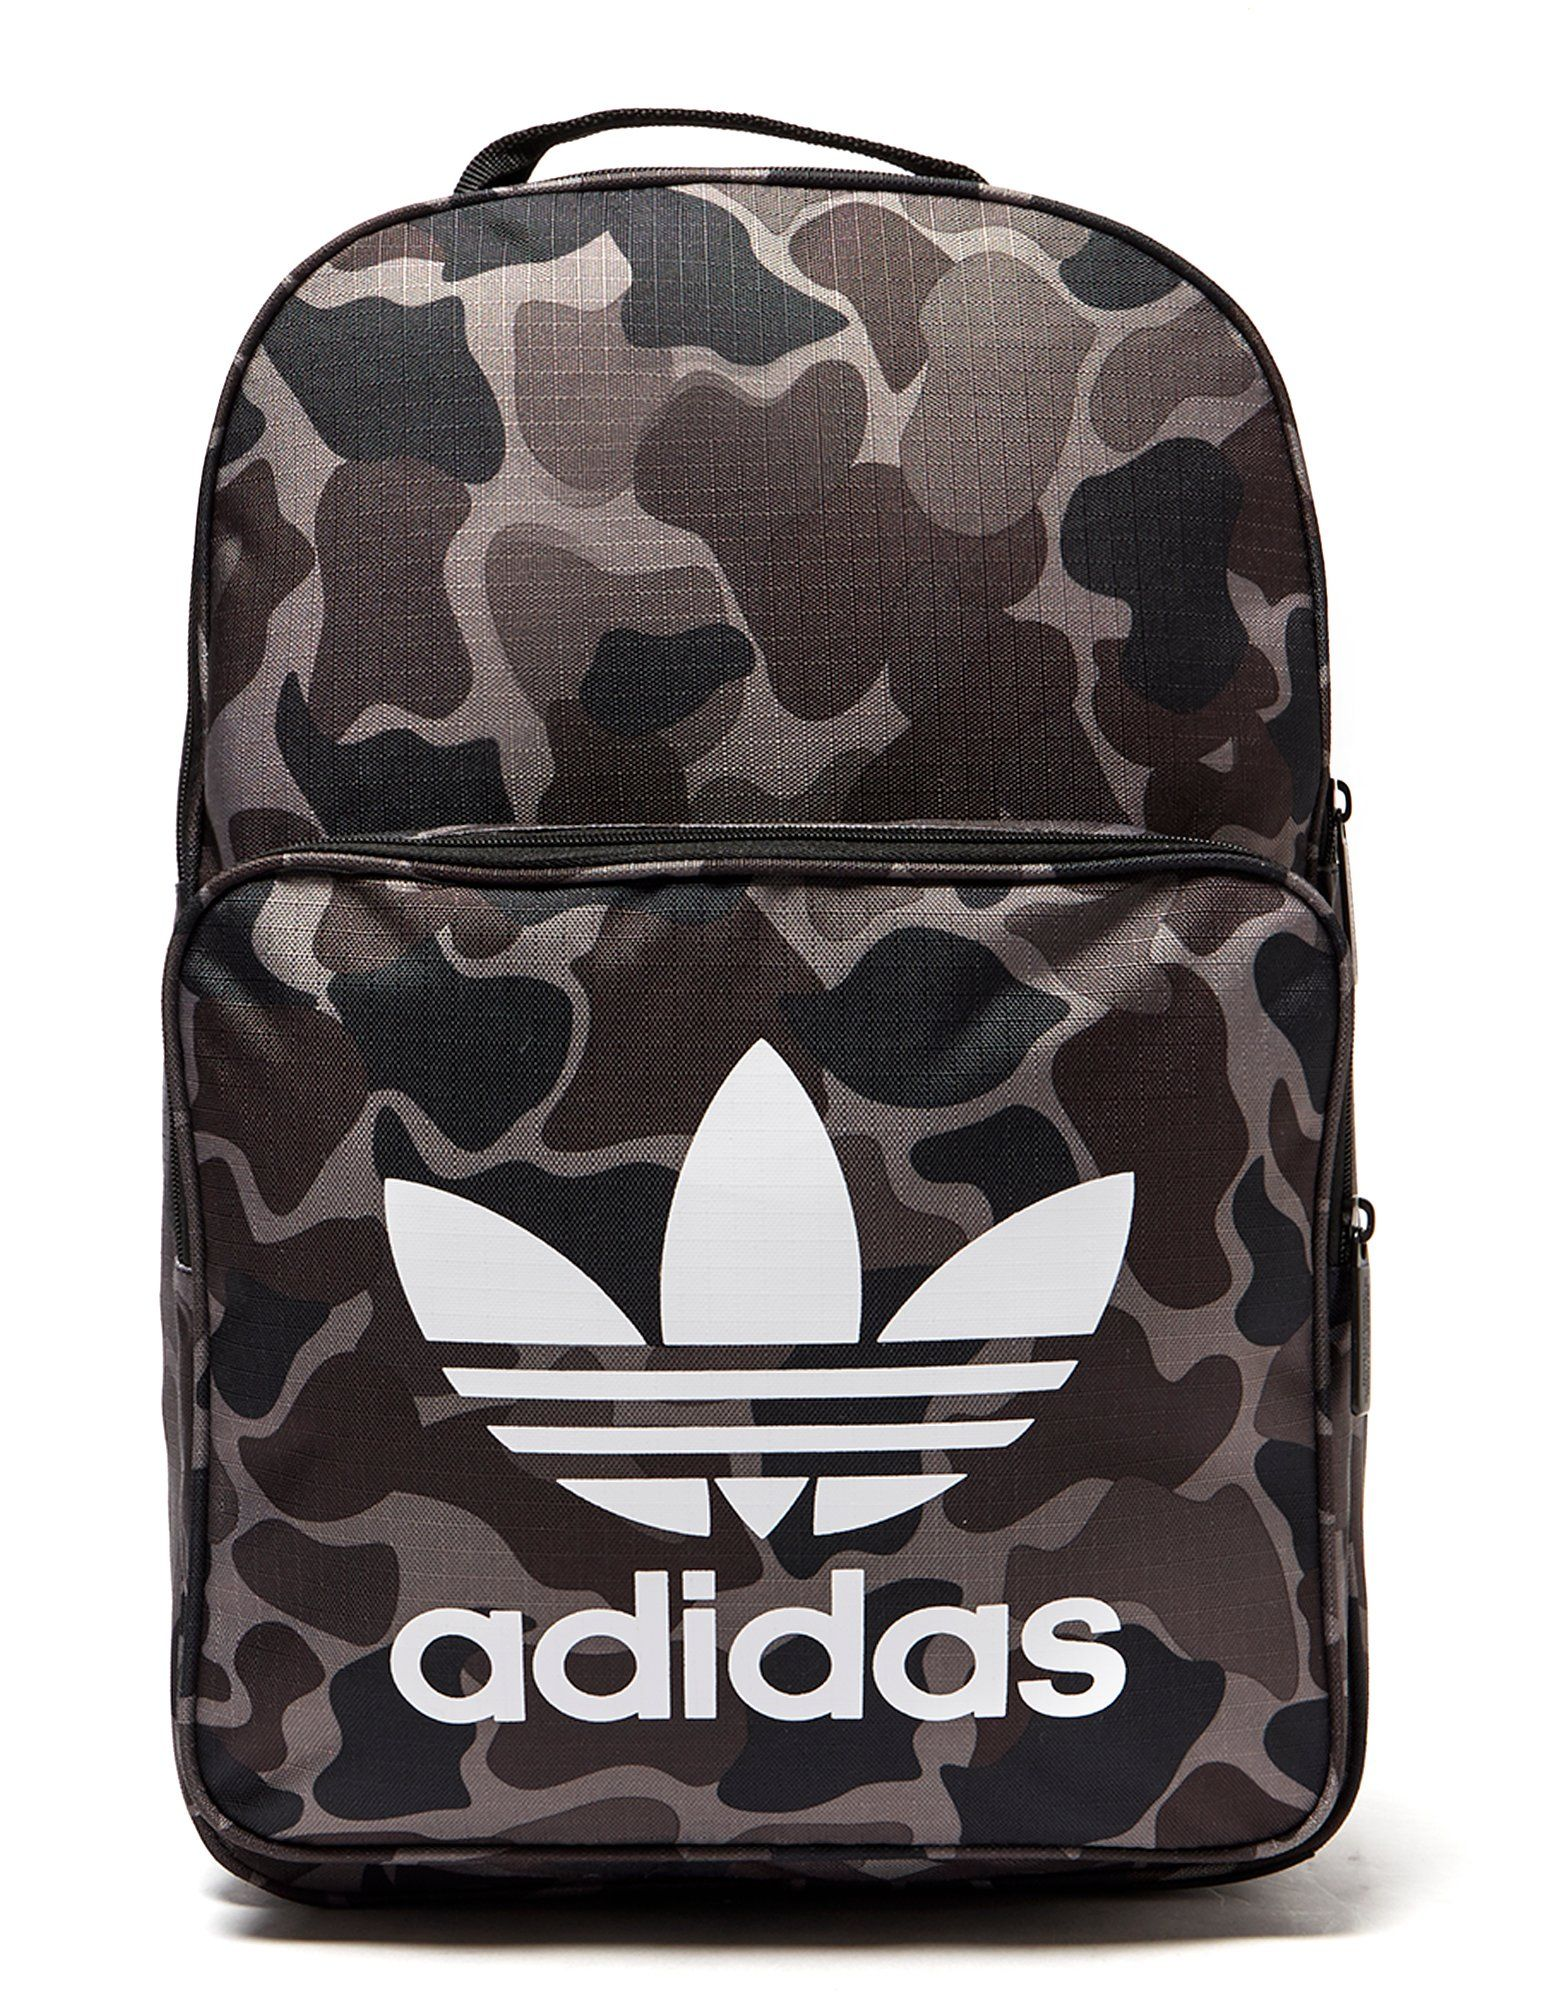 cc2f53b1fb Adidas Grey Camo Backpack